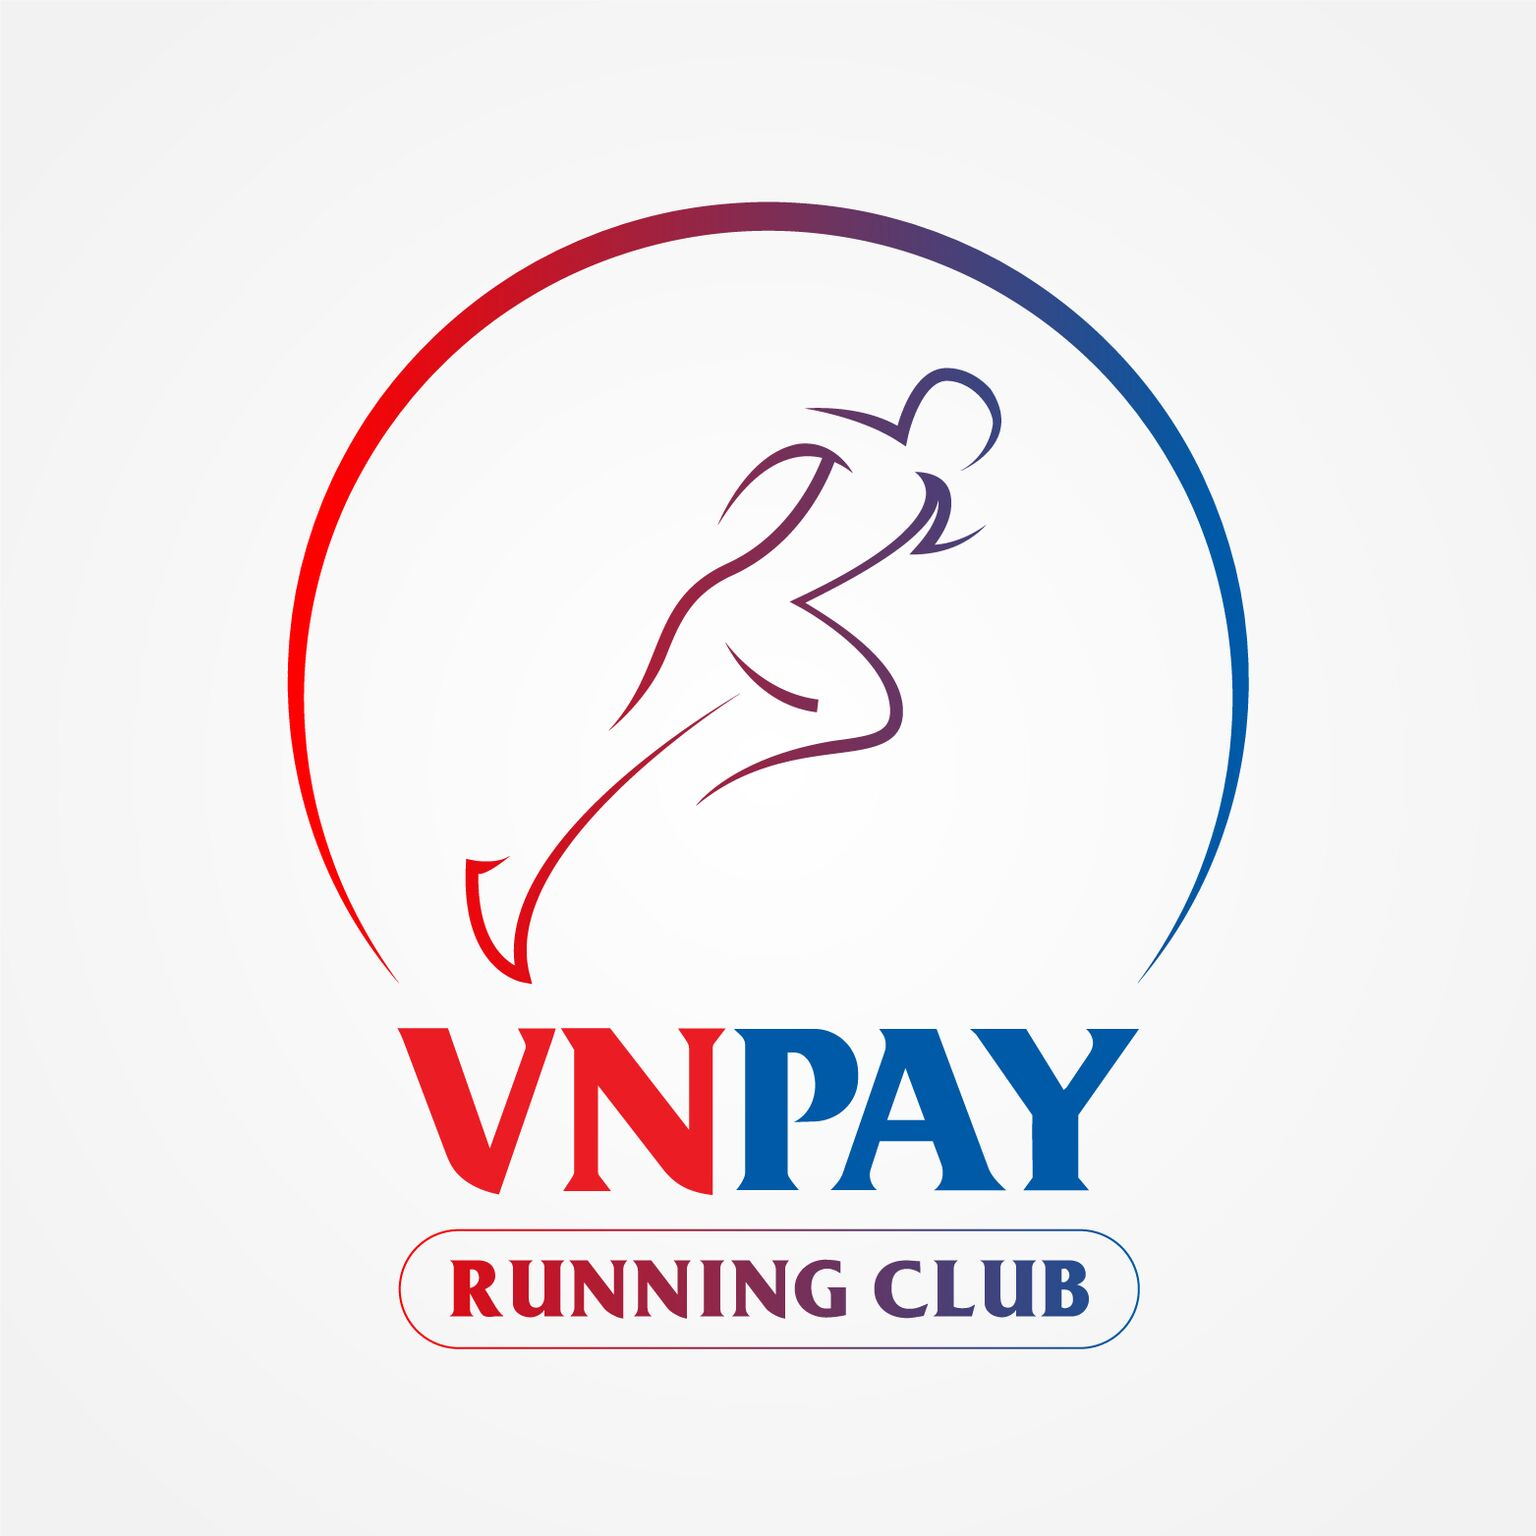 VNPAY Running Club